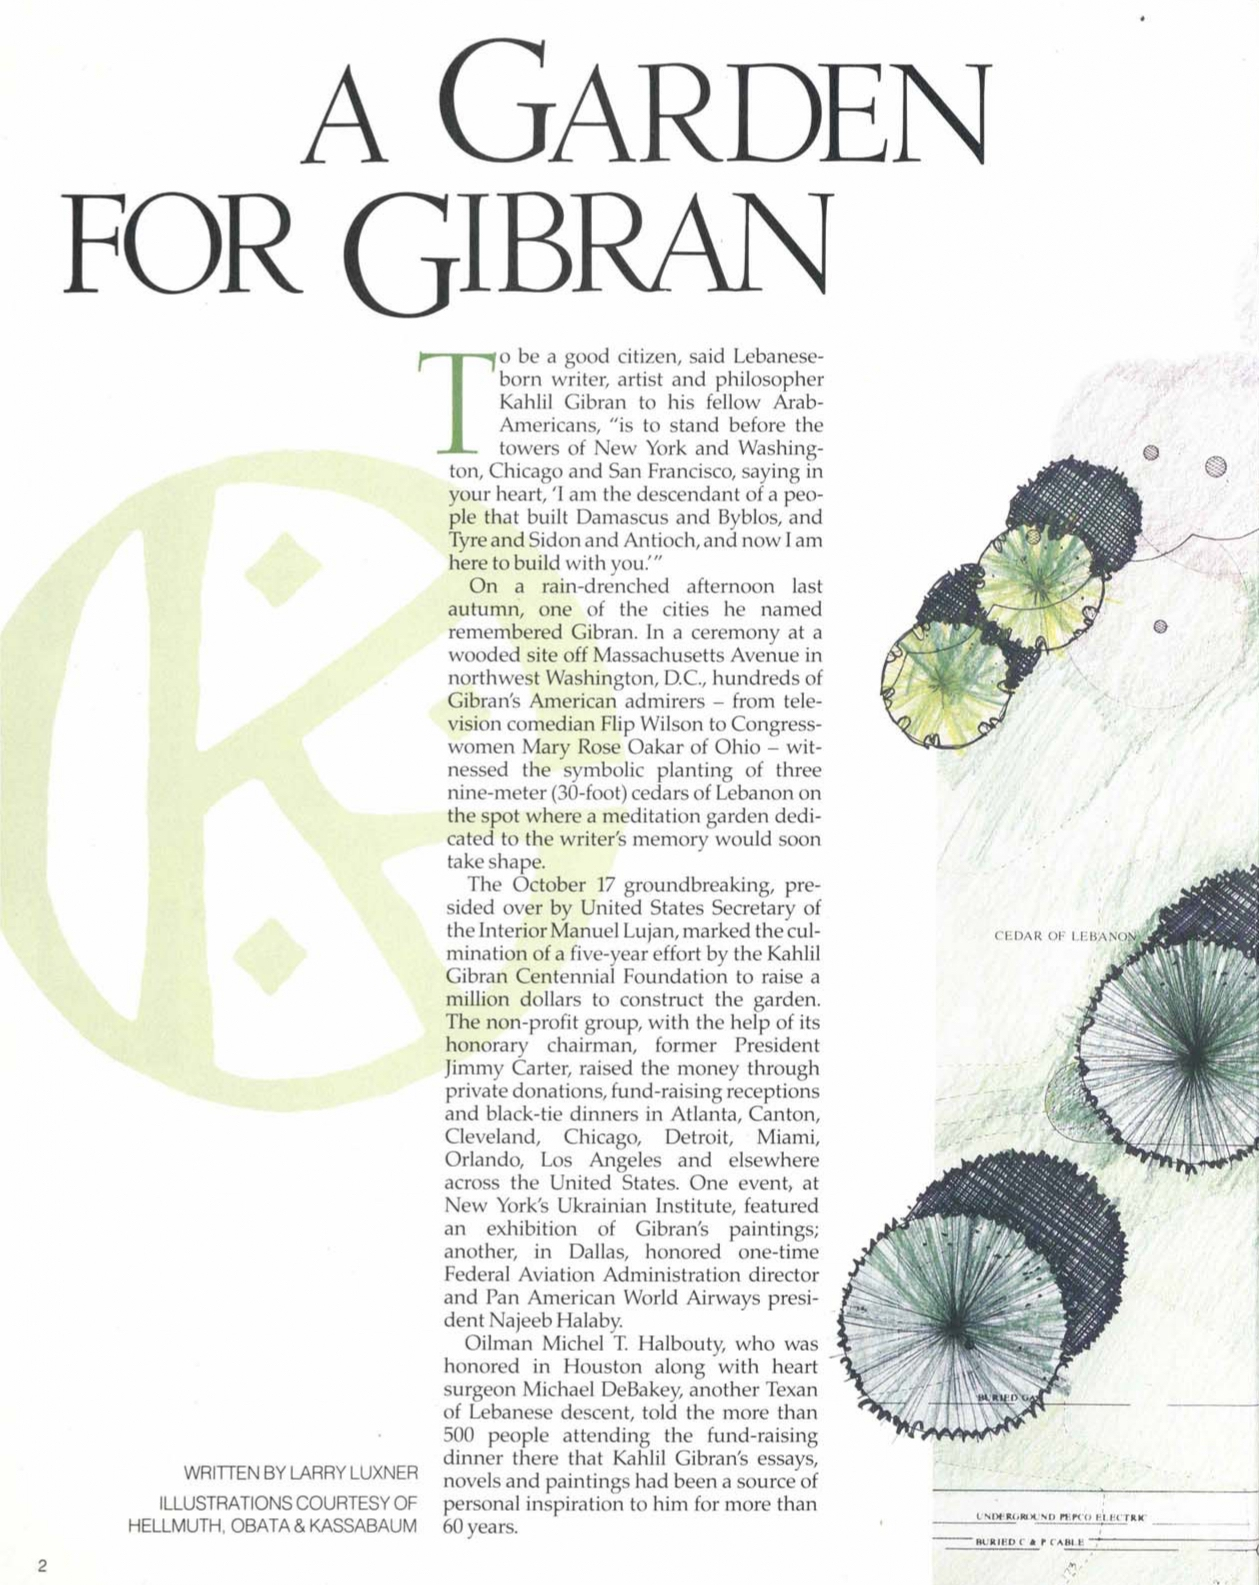 Larry Luxner, A Garden for Gibran, Aramco World Magazine, March-April 1990, pp. 2-5.